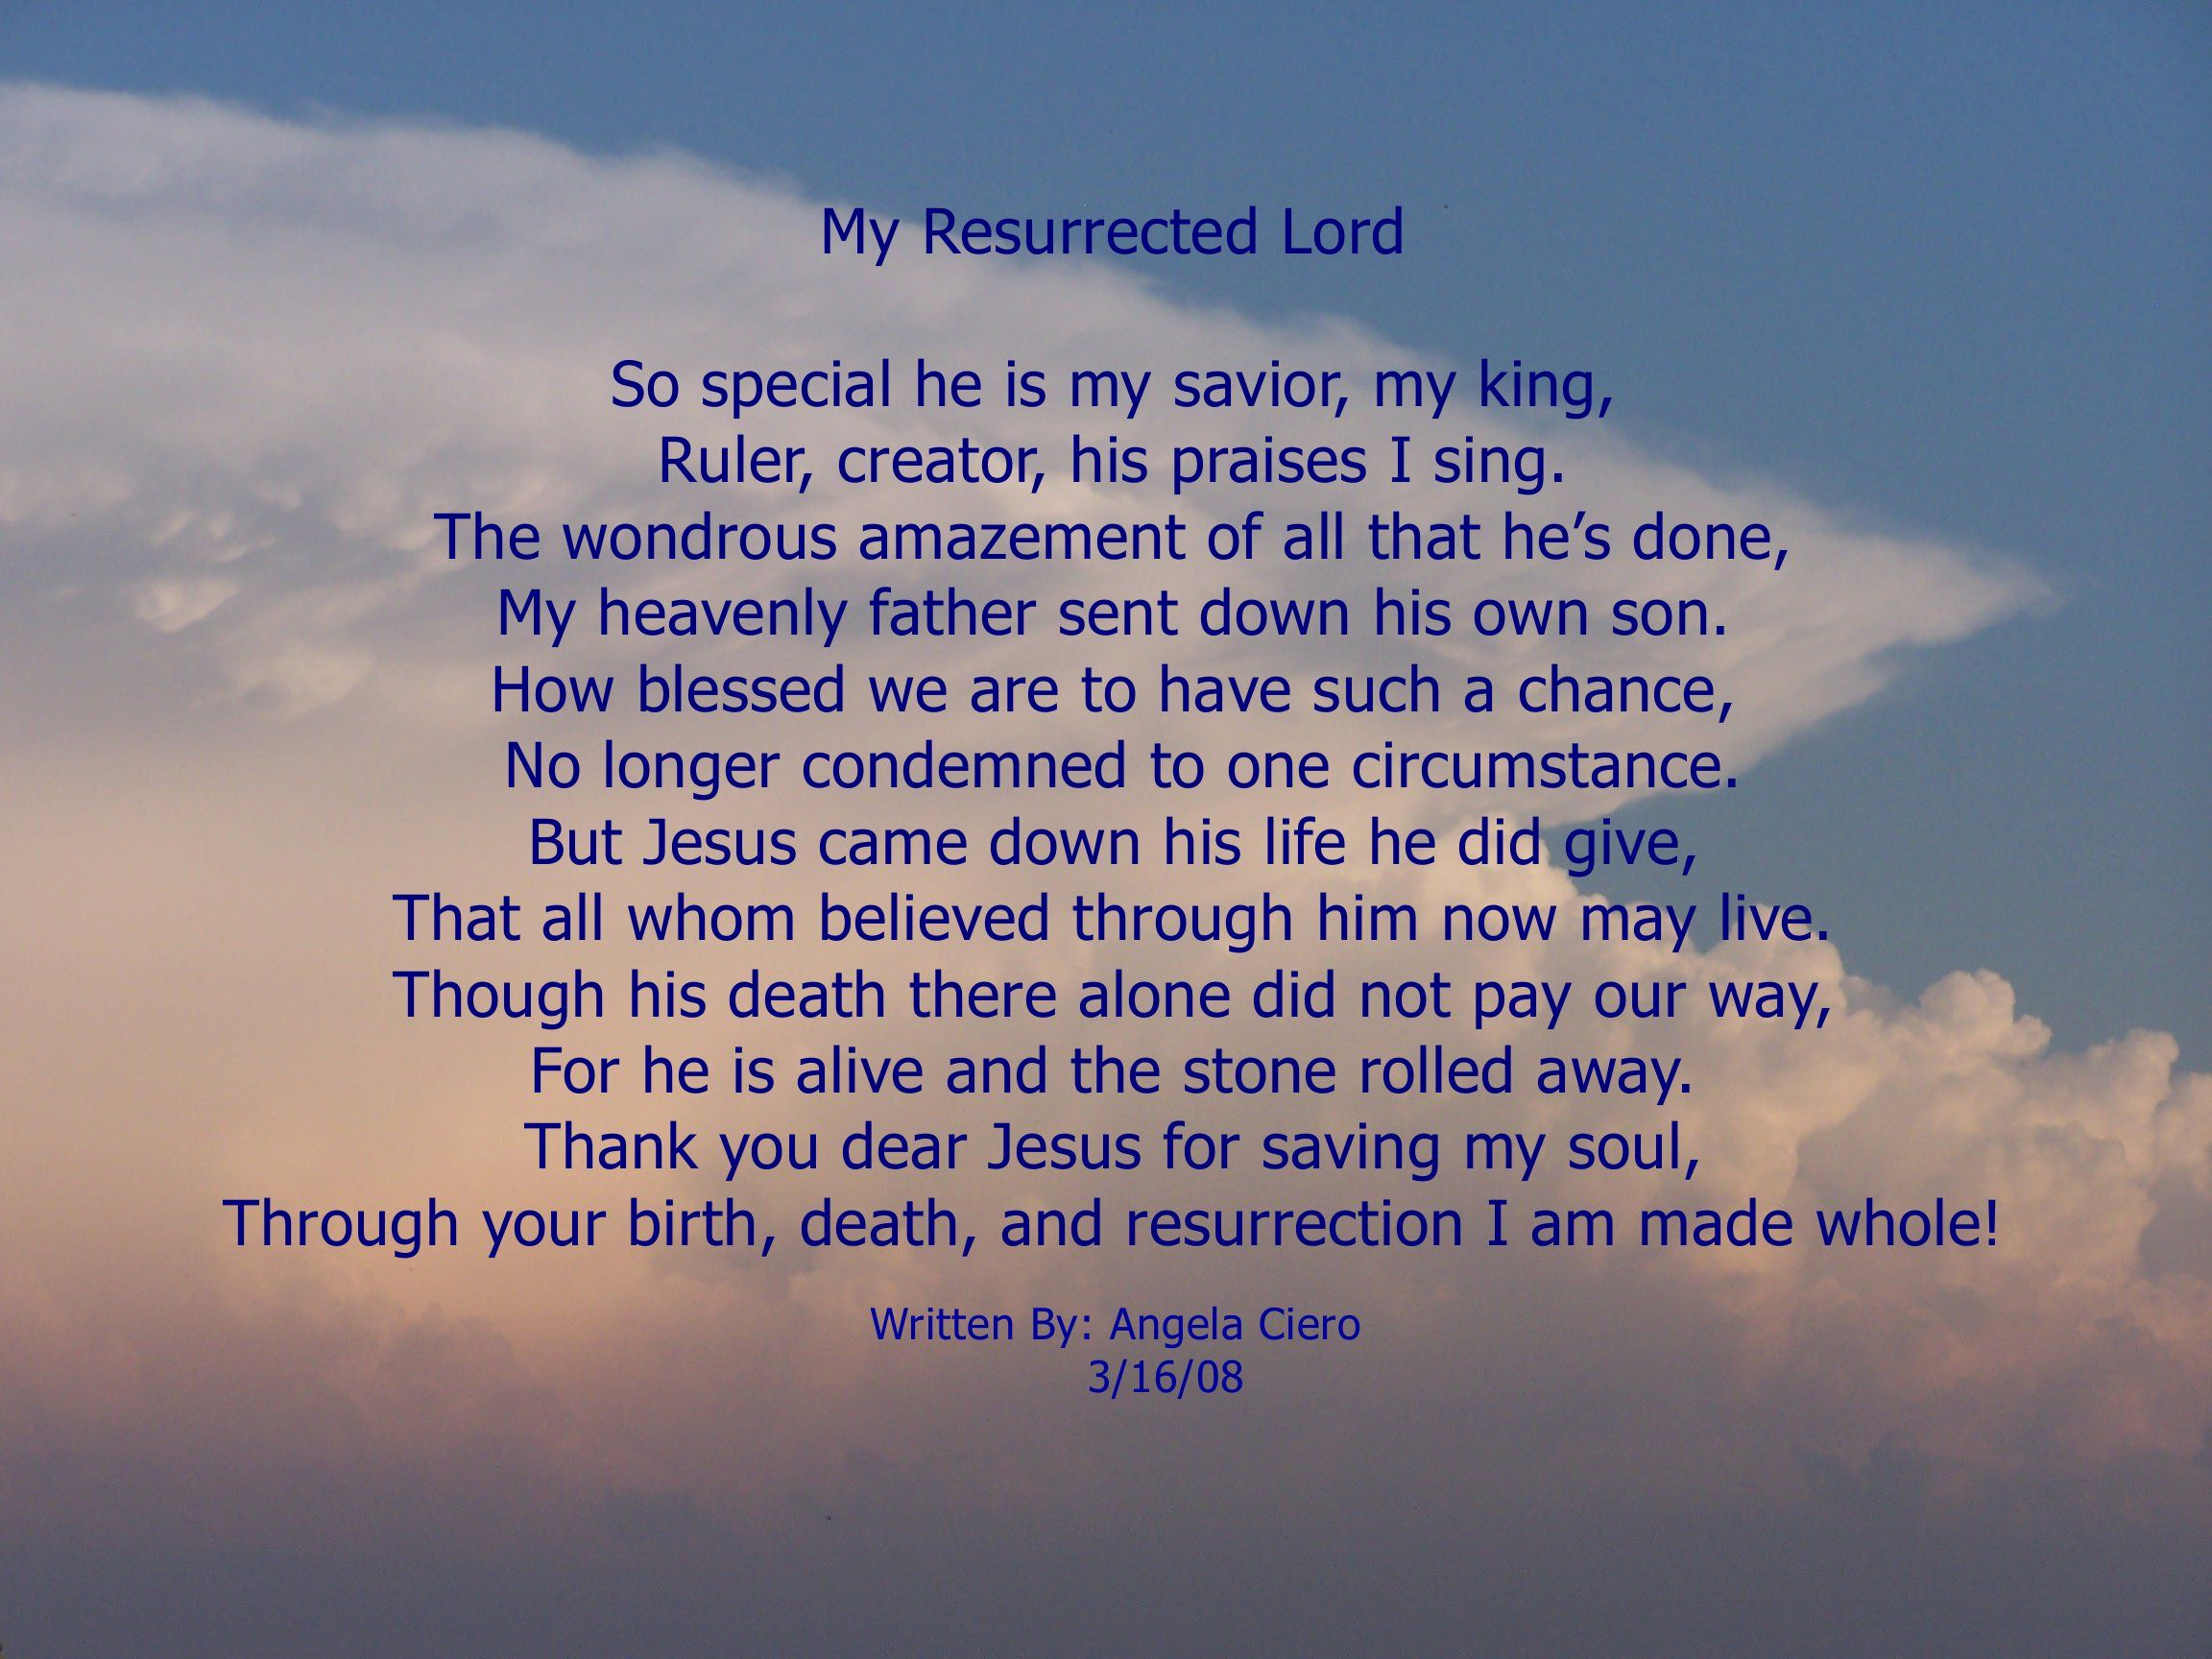 My Resurrected Lord Is A Poem To Remind Us Of The True -1578